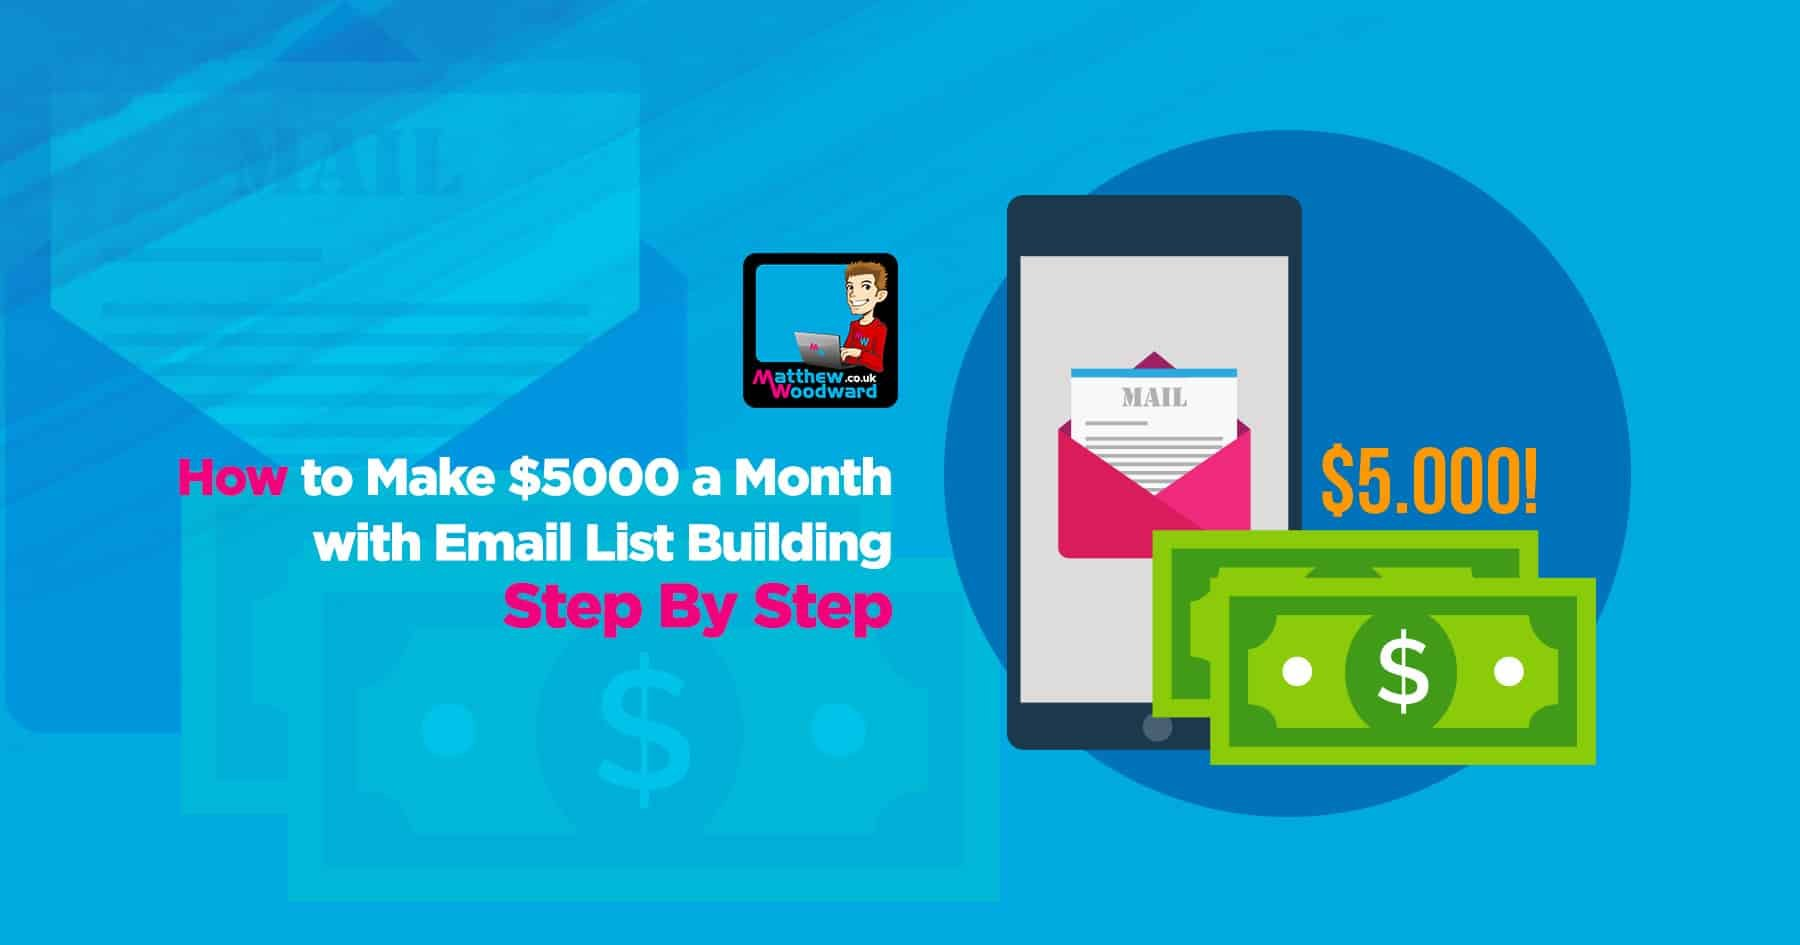 How To Make $5,000 A Month With Email List Building Step By Step